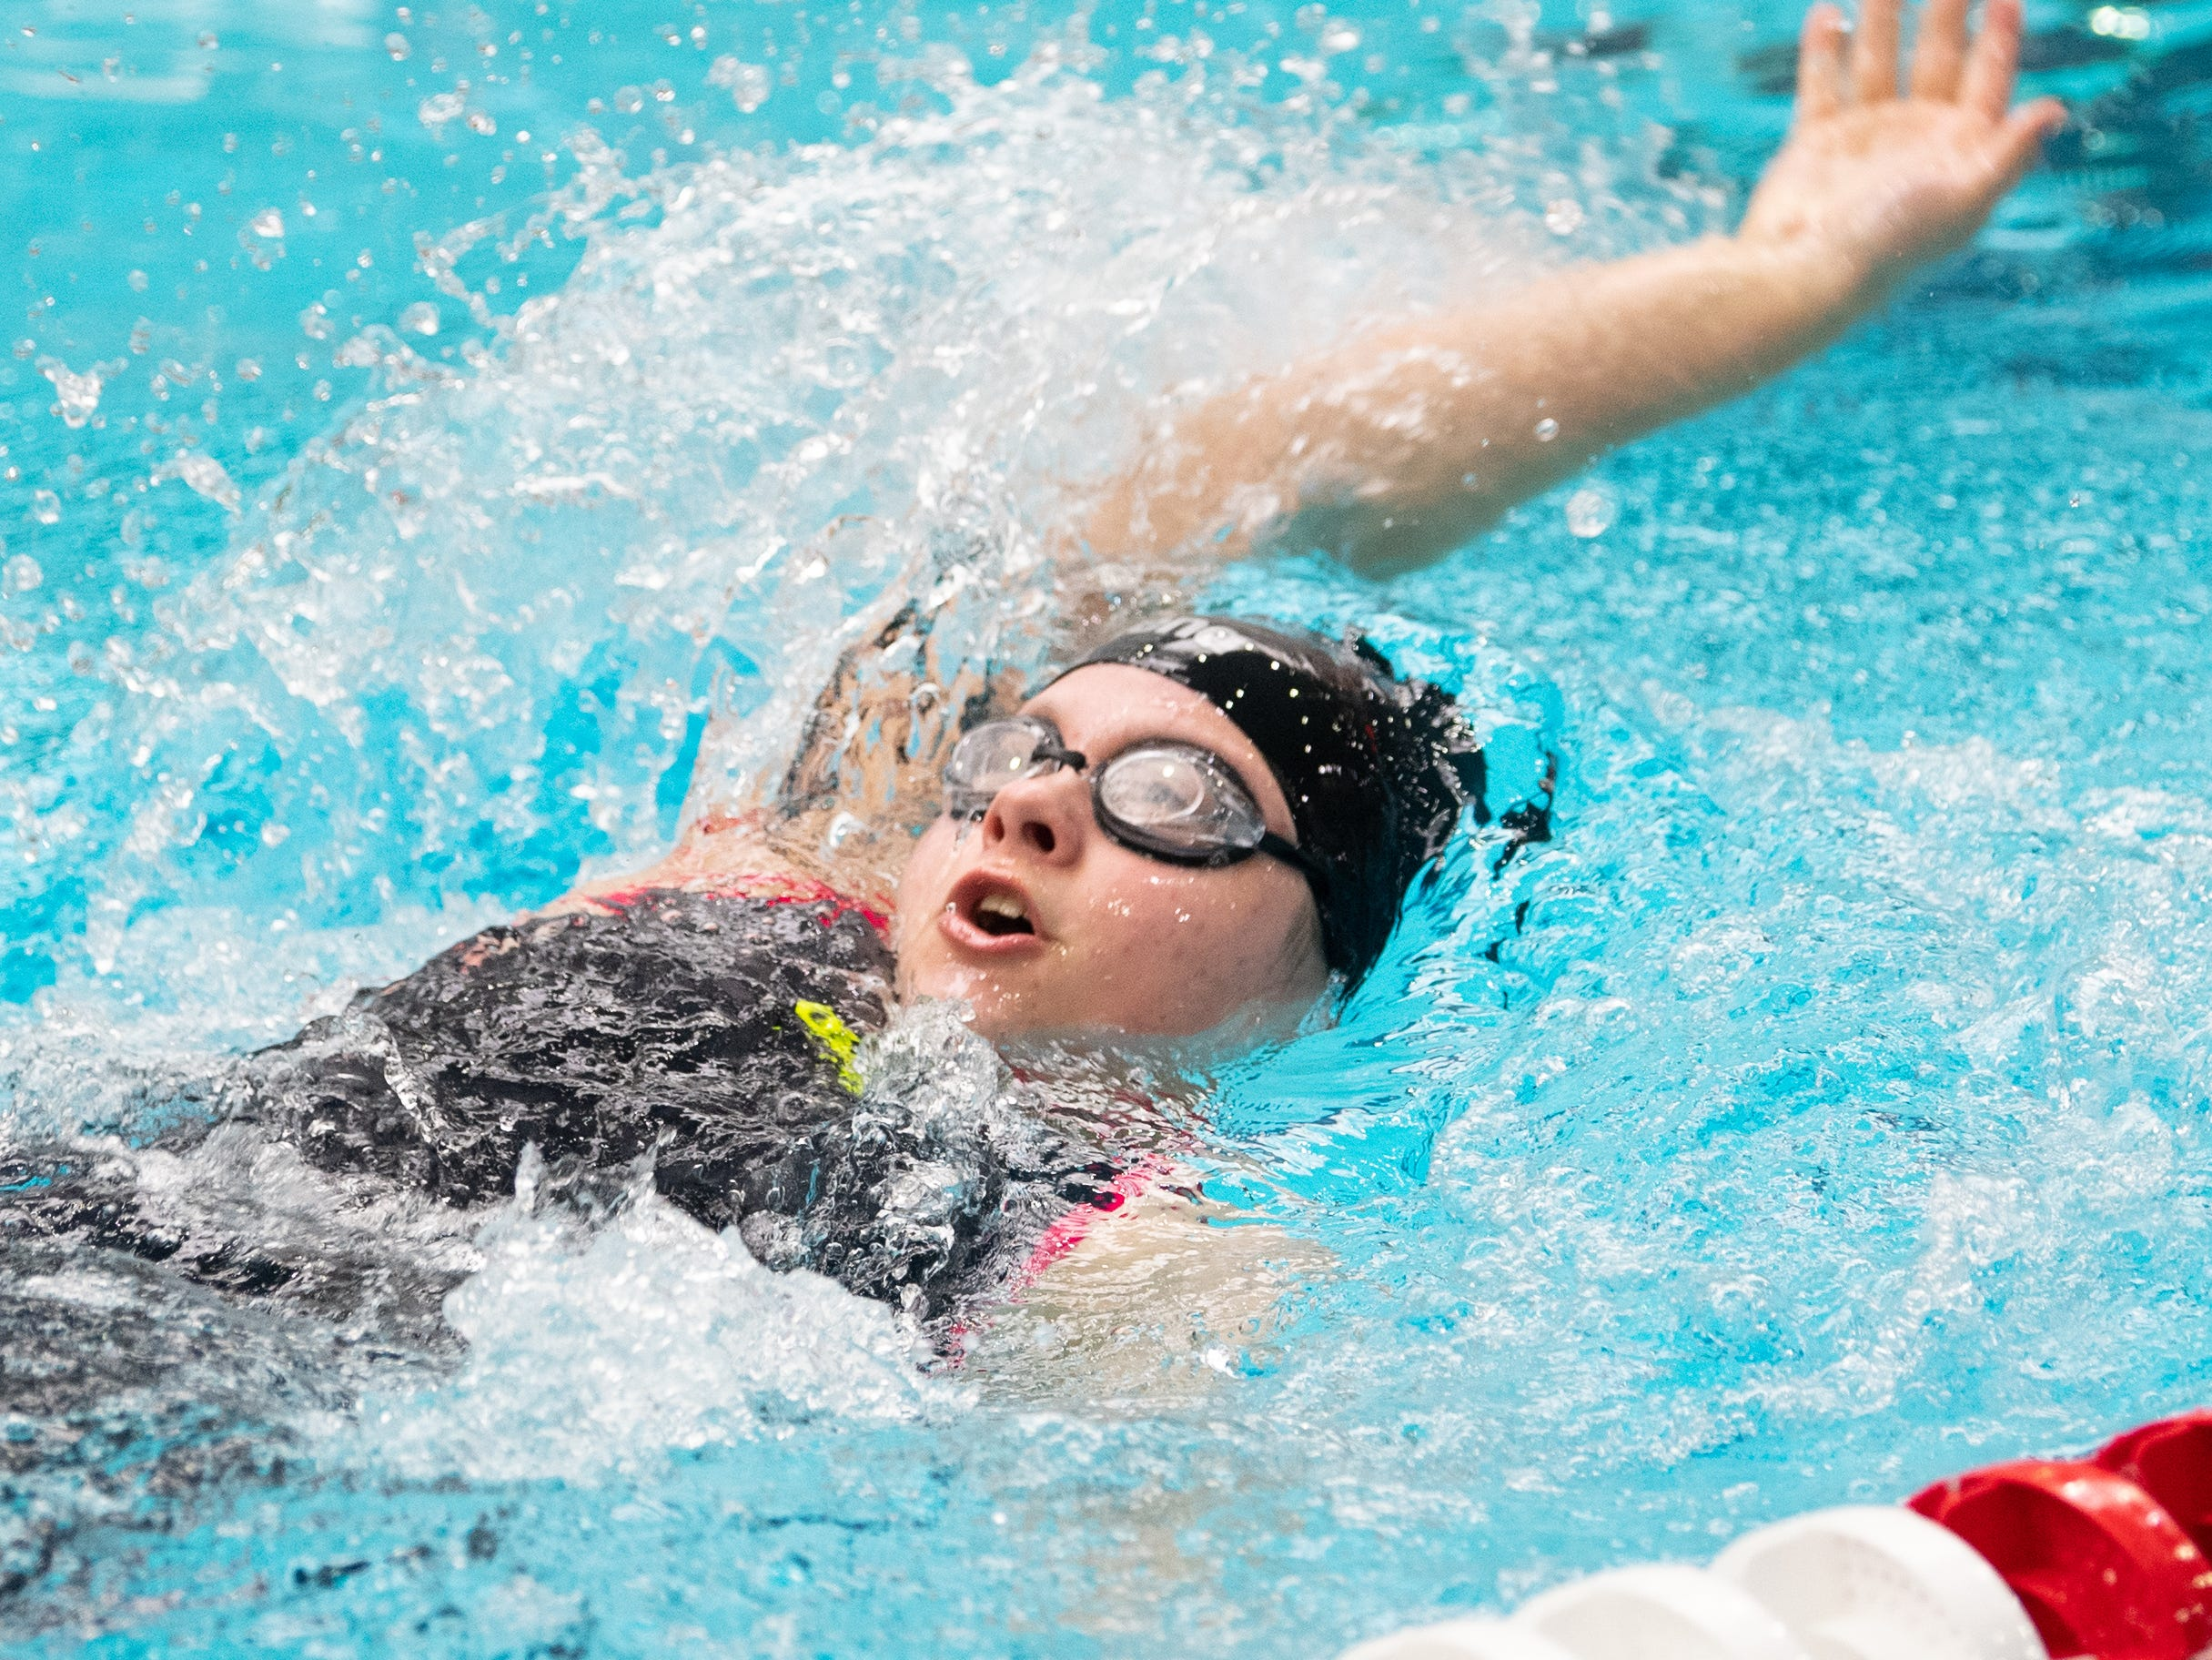 Katelyn Van Der Sleen of Schuylkill Valley competes in the Girls 200 Yard IM during the PIAA District 3 Girls AA Championship, March 1, 2019 at Cumberland Valley High School.